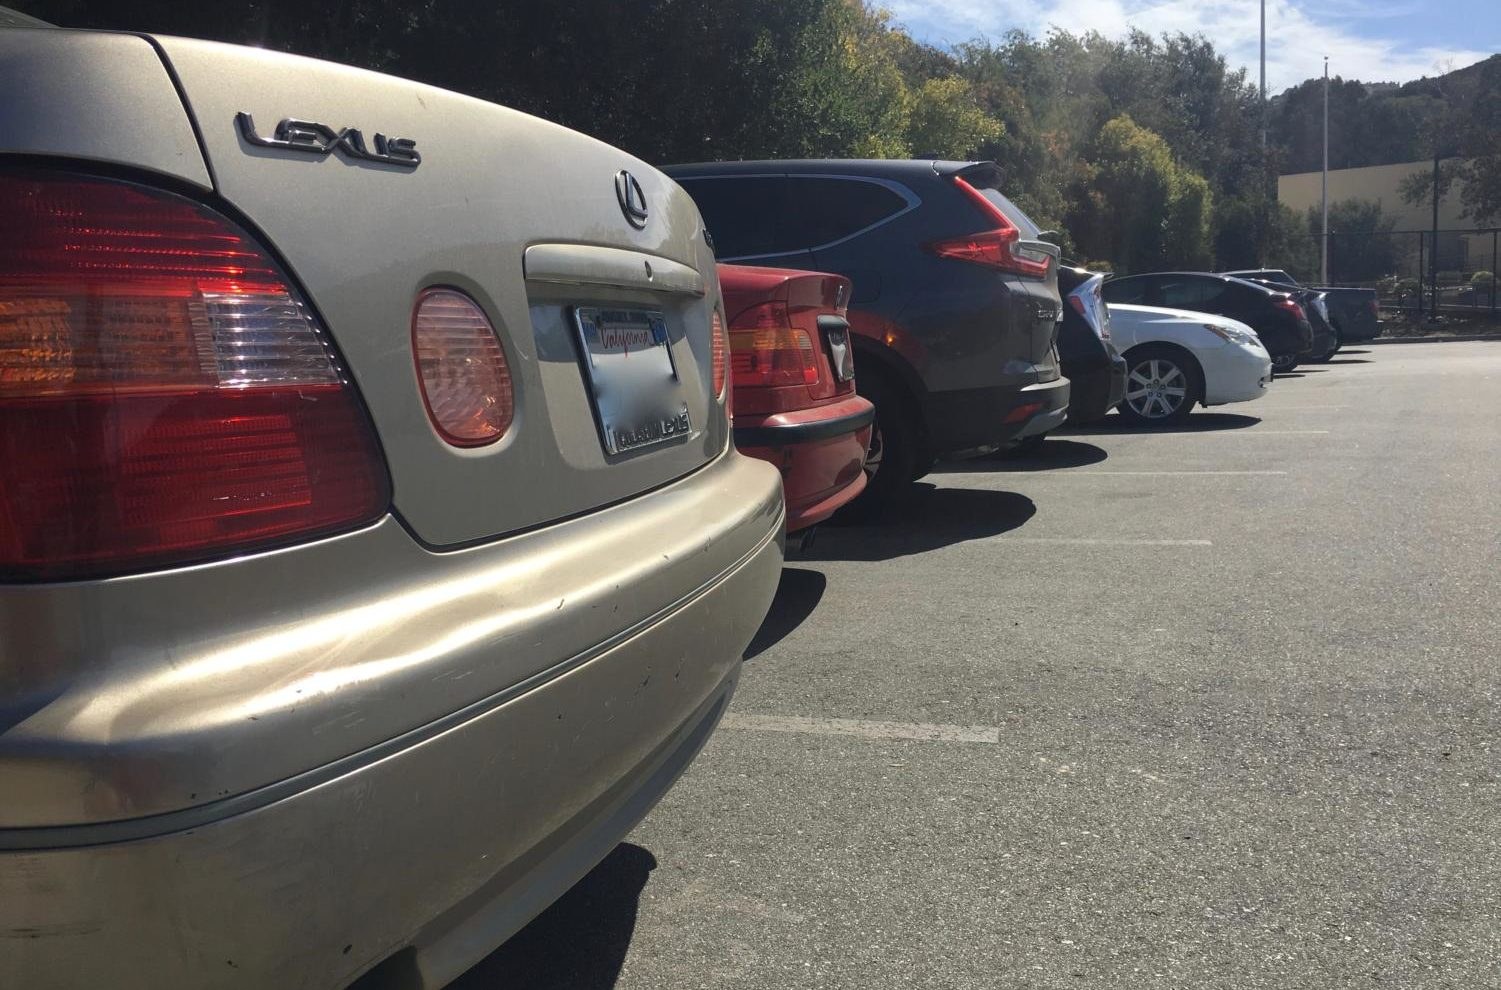 Students must pay for a parking permit in order to park in the student parking lots.